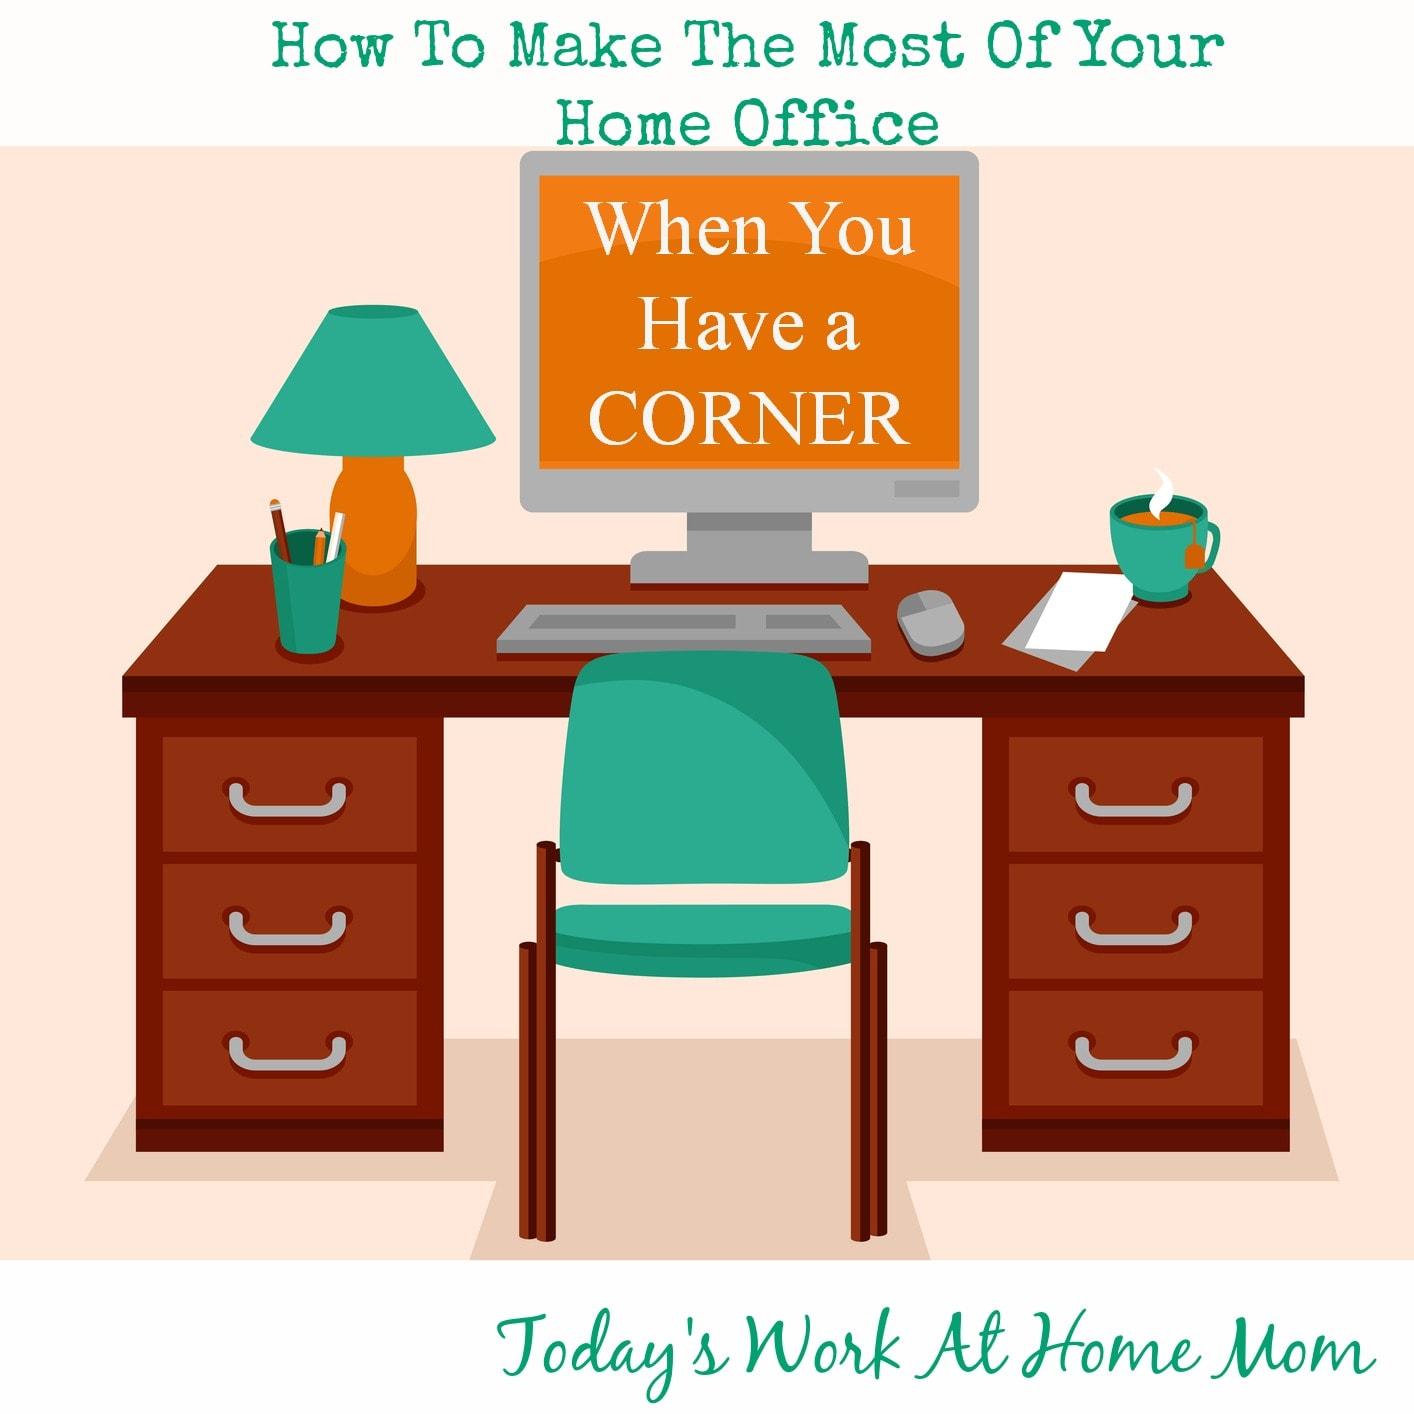 How To Make The Most Of A Home Office When All Youu0027ve Got Is